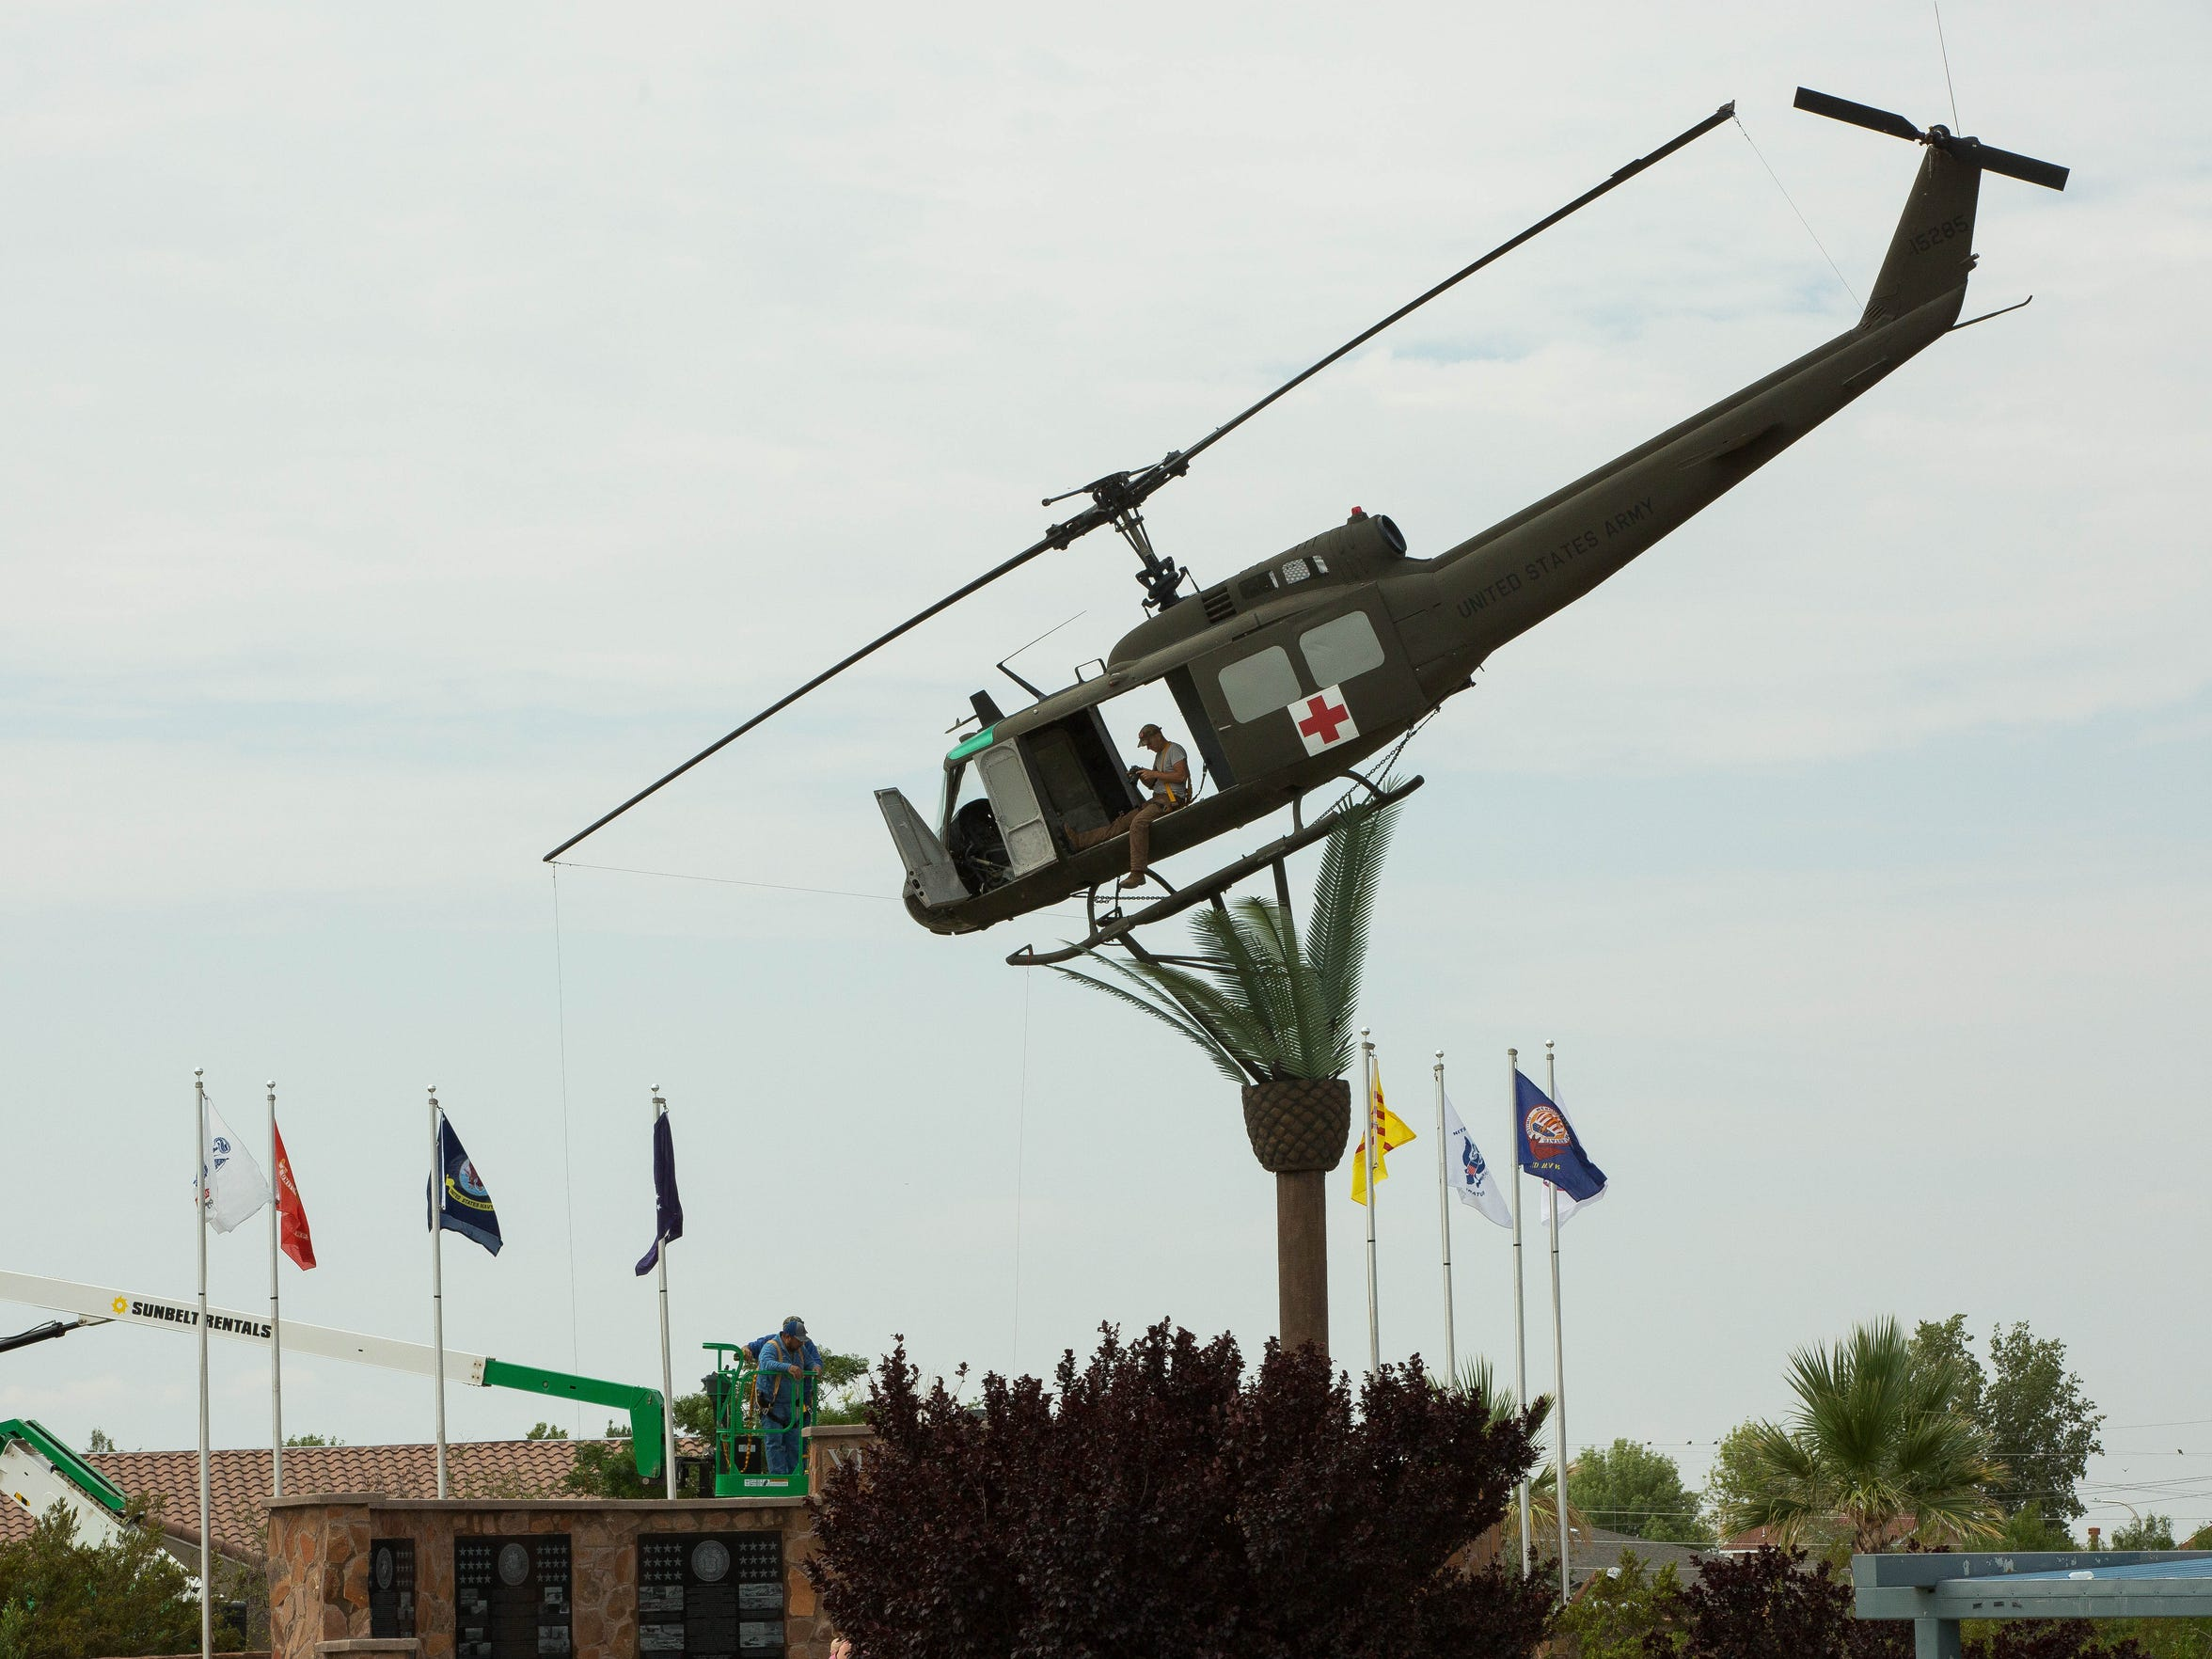 "The Bell UH-1 Iroquois ""Huey"" helicopter at Veterans Memorial Park is part of Frances Williams' contribution to the Vietnam War monument."